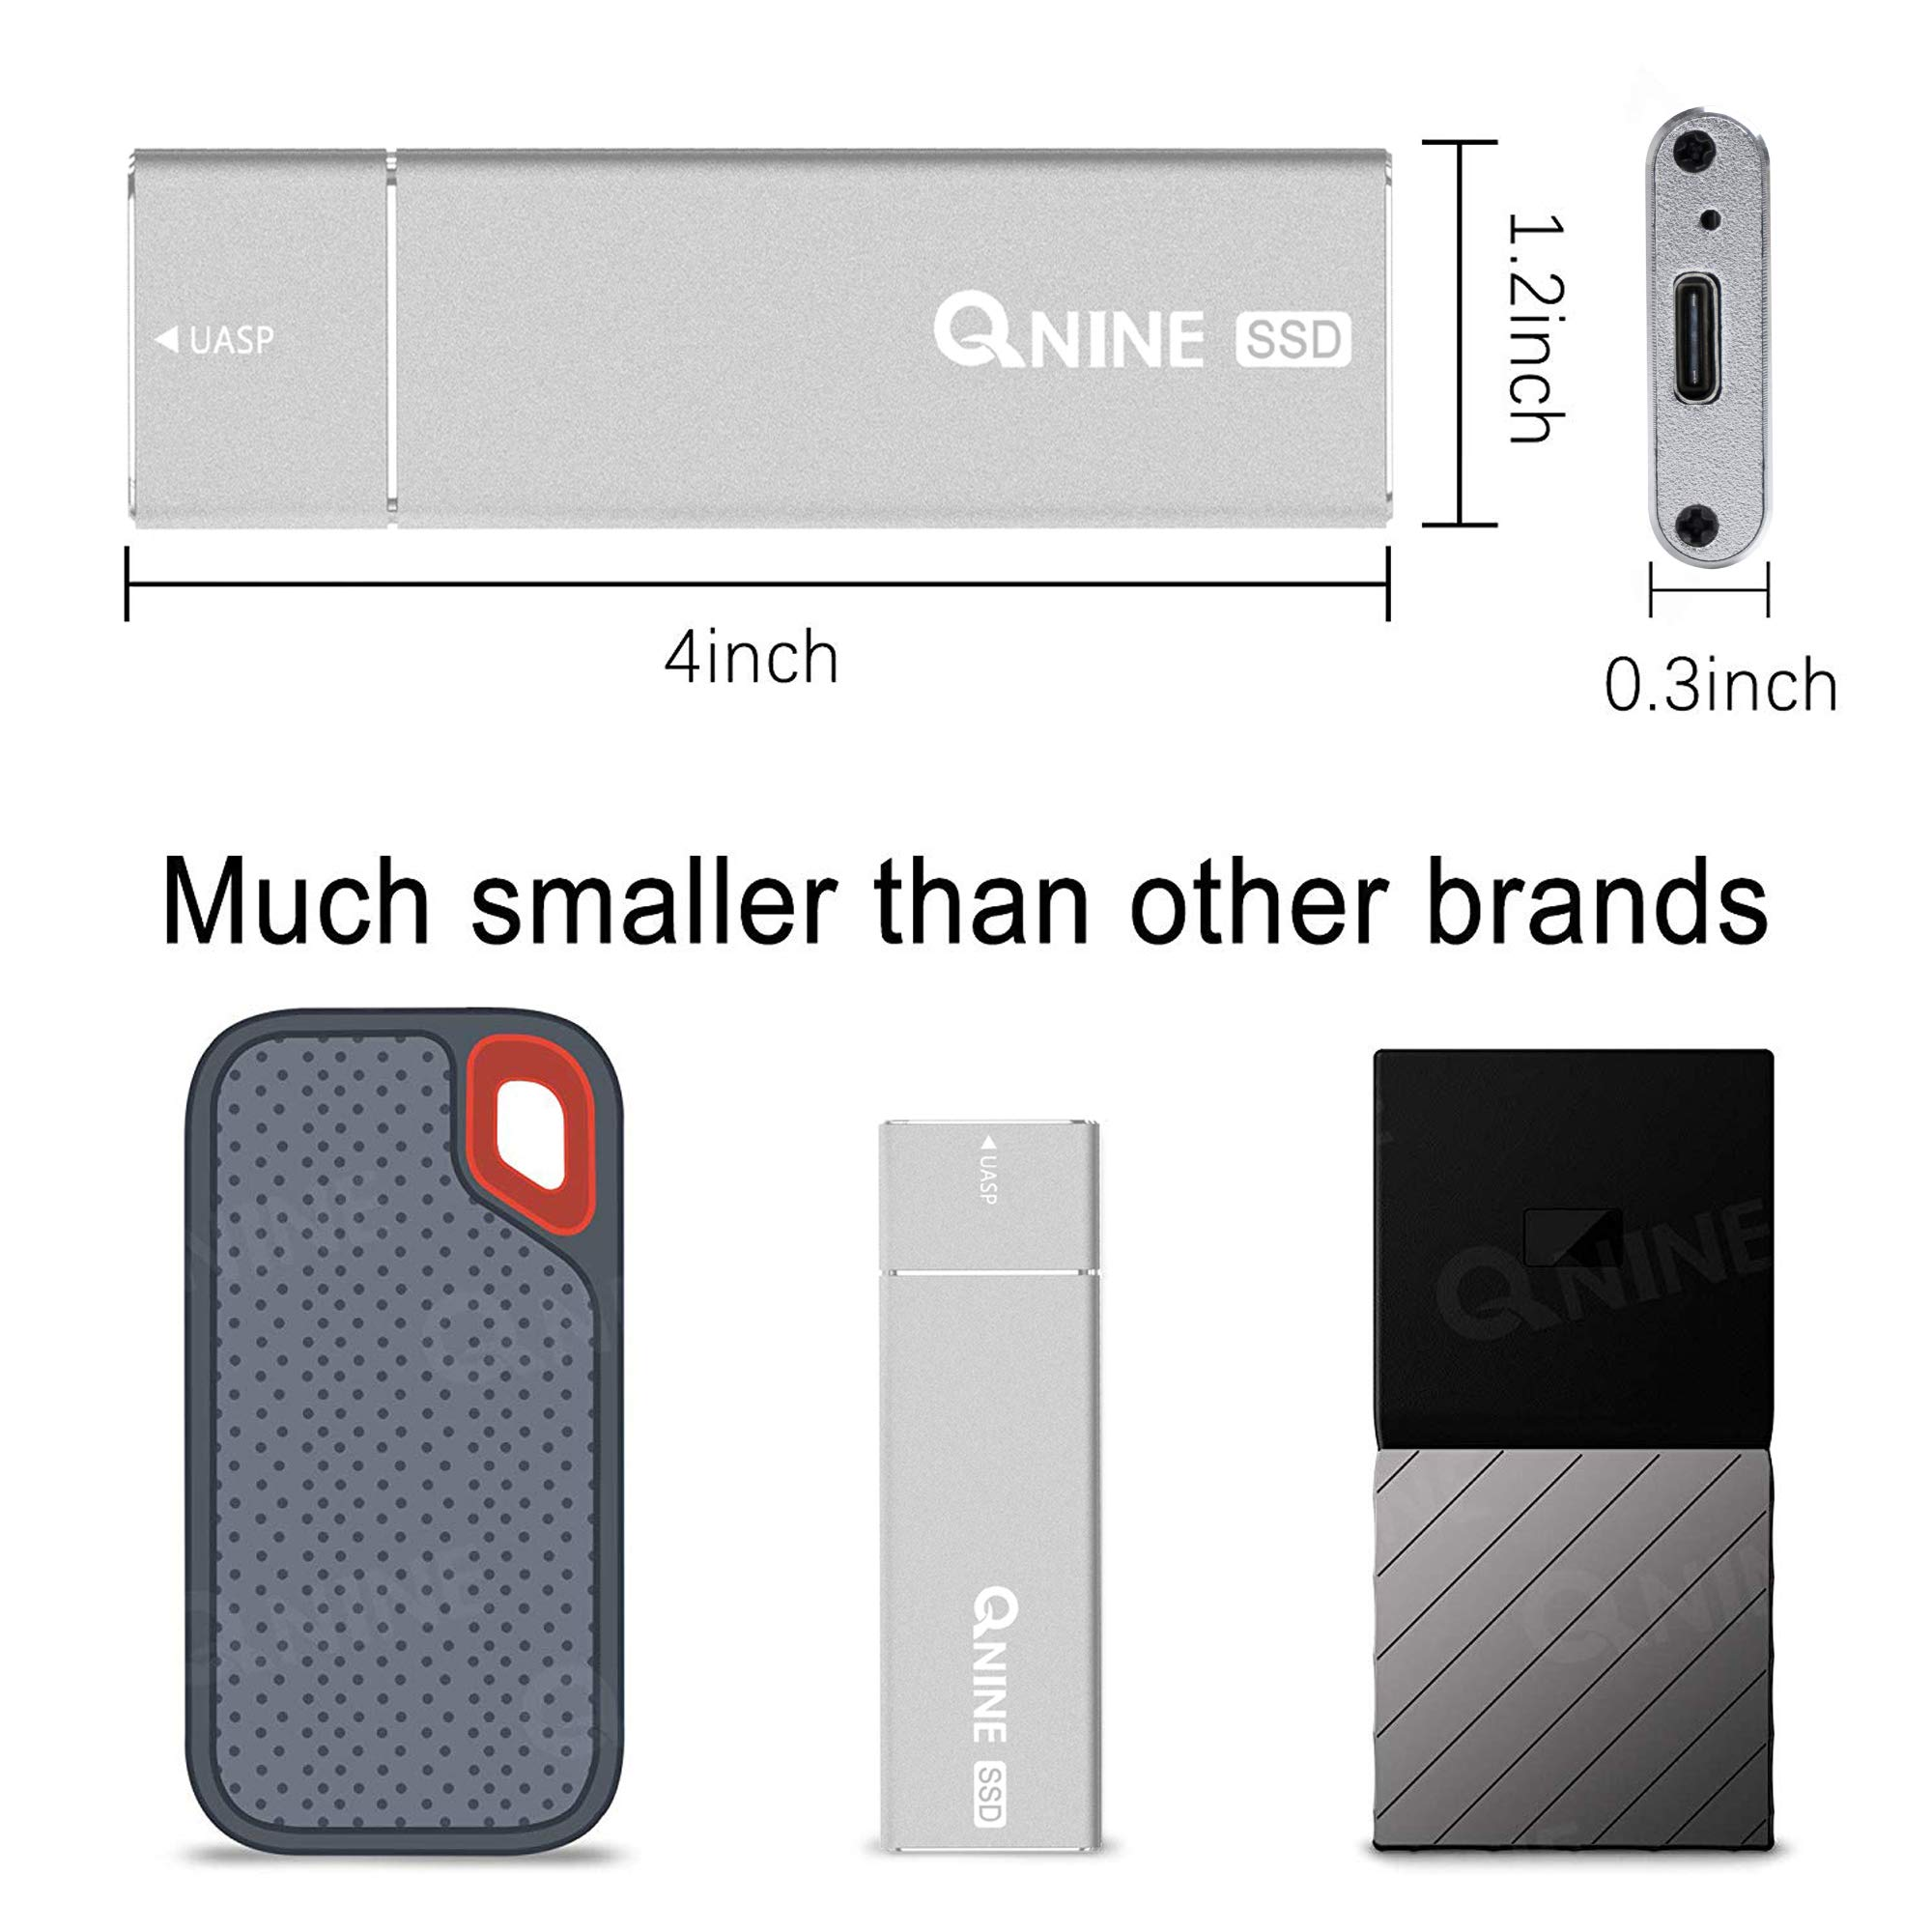 QNINE 256Gb Extreme Portable SSD (1.1 oz Weight), USB C SSD External Hard Drive - USB 3.1 High Speed External SSD for MacBook Pro, Xbox One X, etc by QNINE (Image #3)